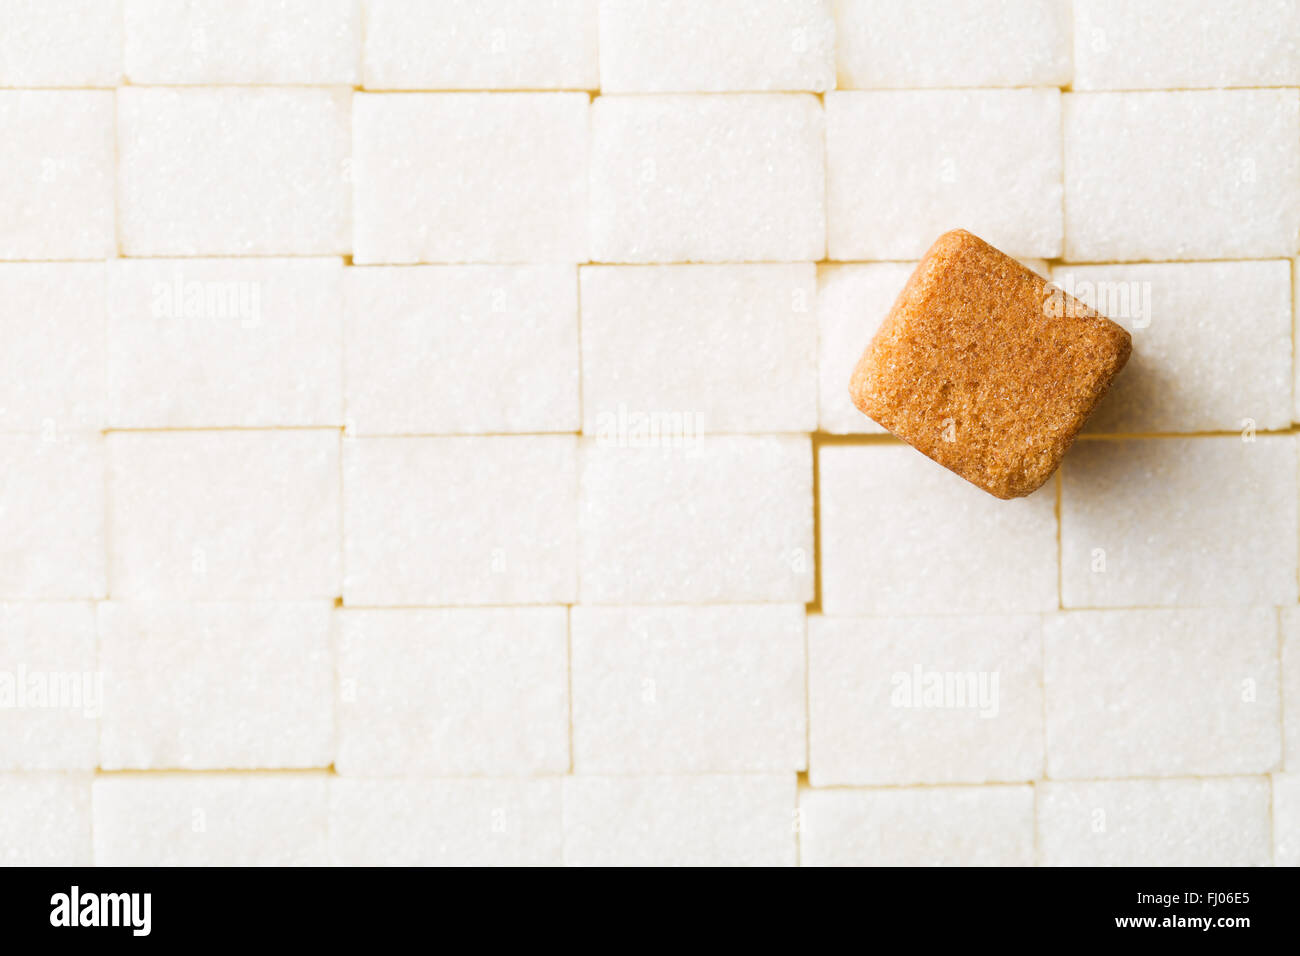 the brown cane sugar cube on white sugar cubes - Stock Image